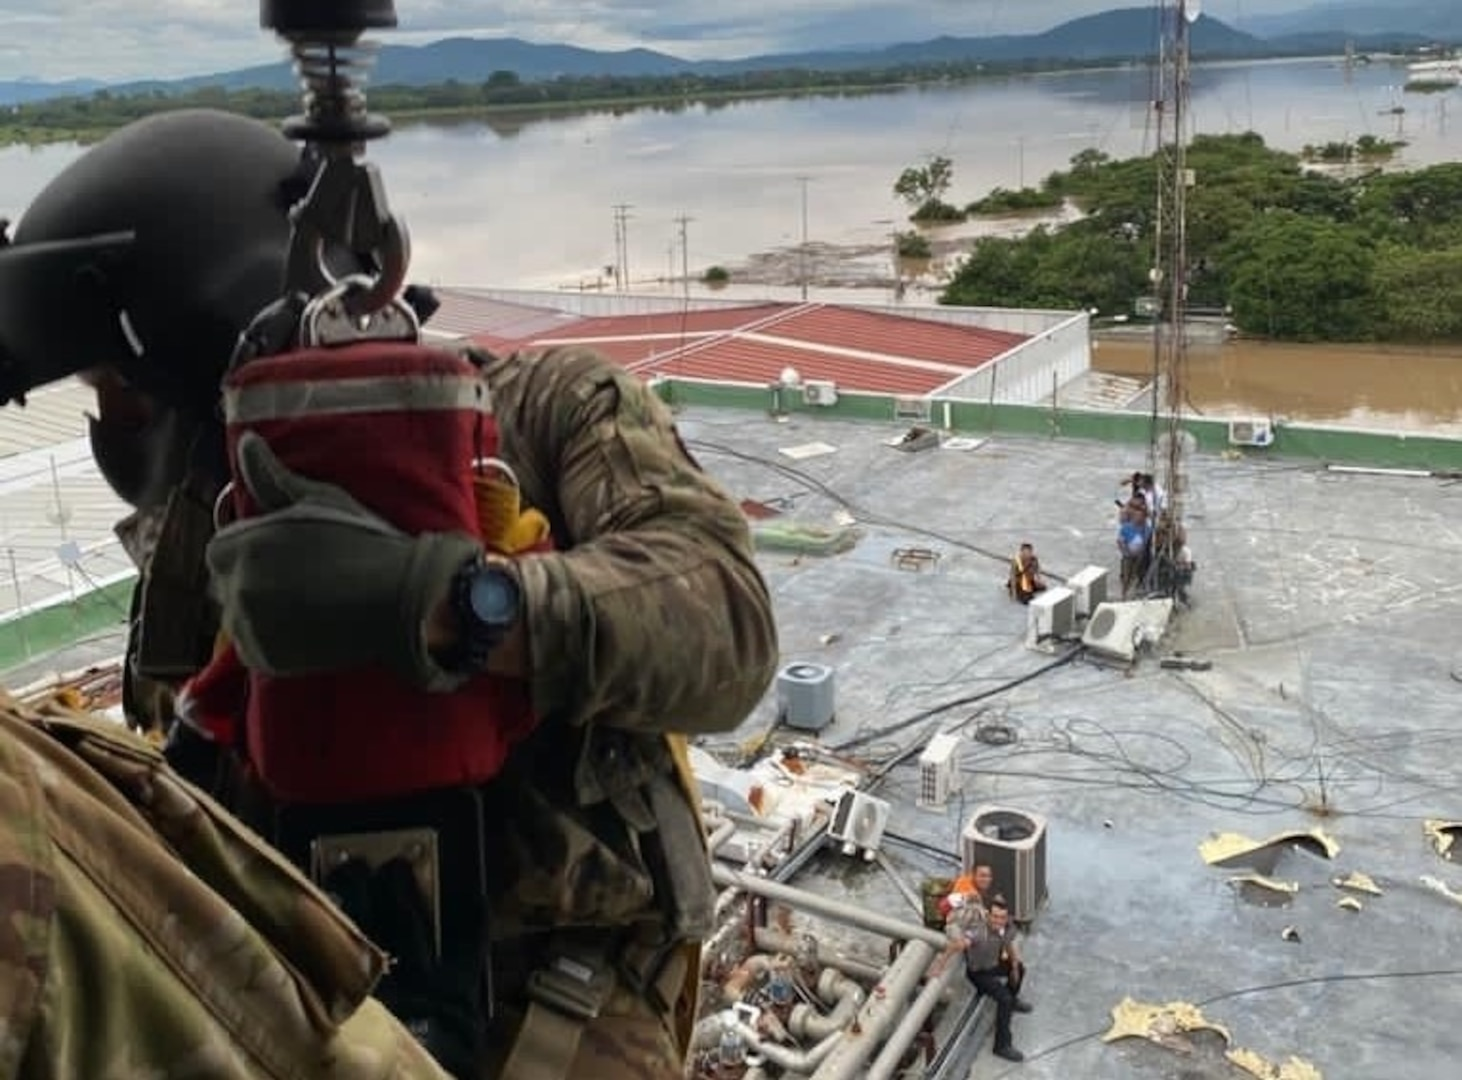 A U.S. Army South HH-60 Black Hawk helicopter assigned to the 1-228th Aviation Regiment, Joint Task Force-Bravo rescued victims of Hurricane Eta stranded in floodwaters following the effects of Hurricane Eta in Honduras, Nov. 5, 2020. JTF-B's training and strategic location allows them to mobilize and respond to an emergency with very short notice, enabling them to rapidly respond to the needs of our partners. (Courtesy photo)